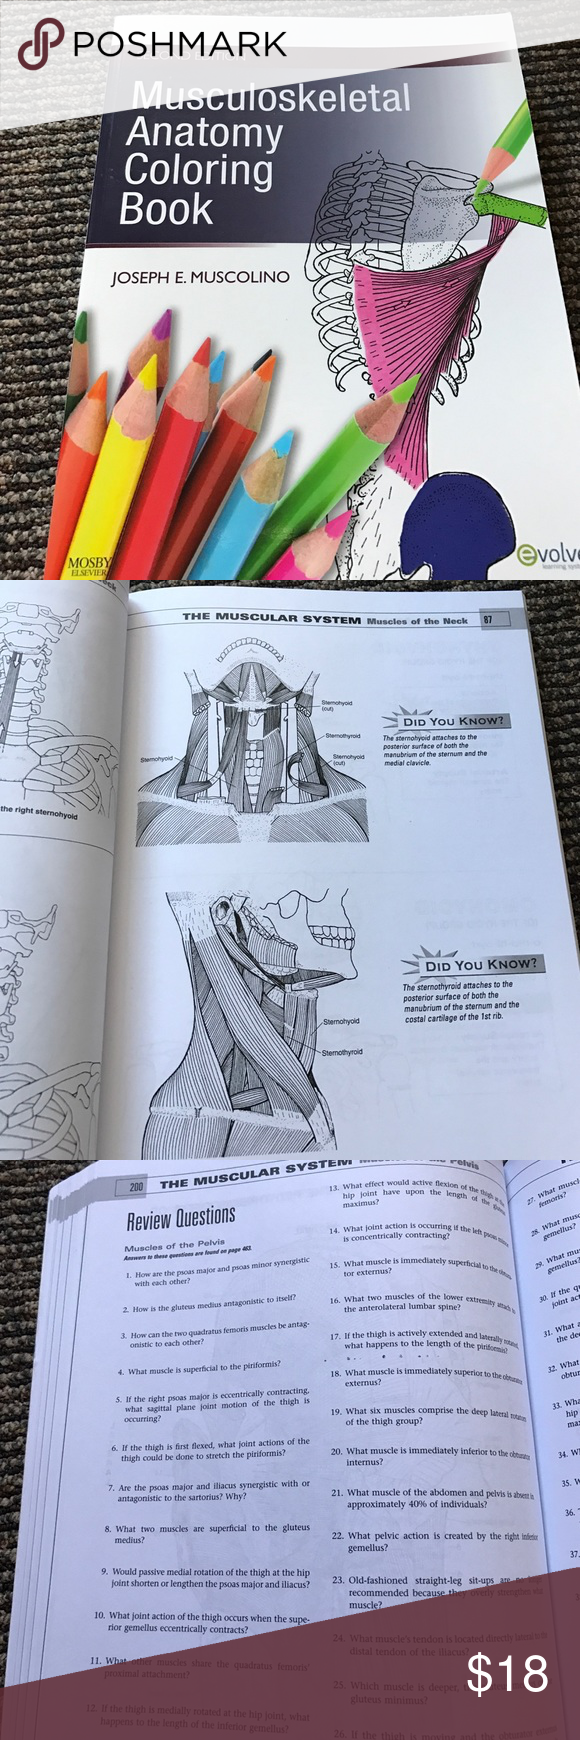 Musculoskeletal Anatomy Coloring Book Gently used. Please see images ...